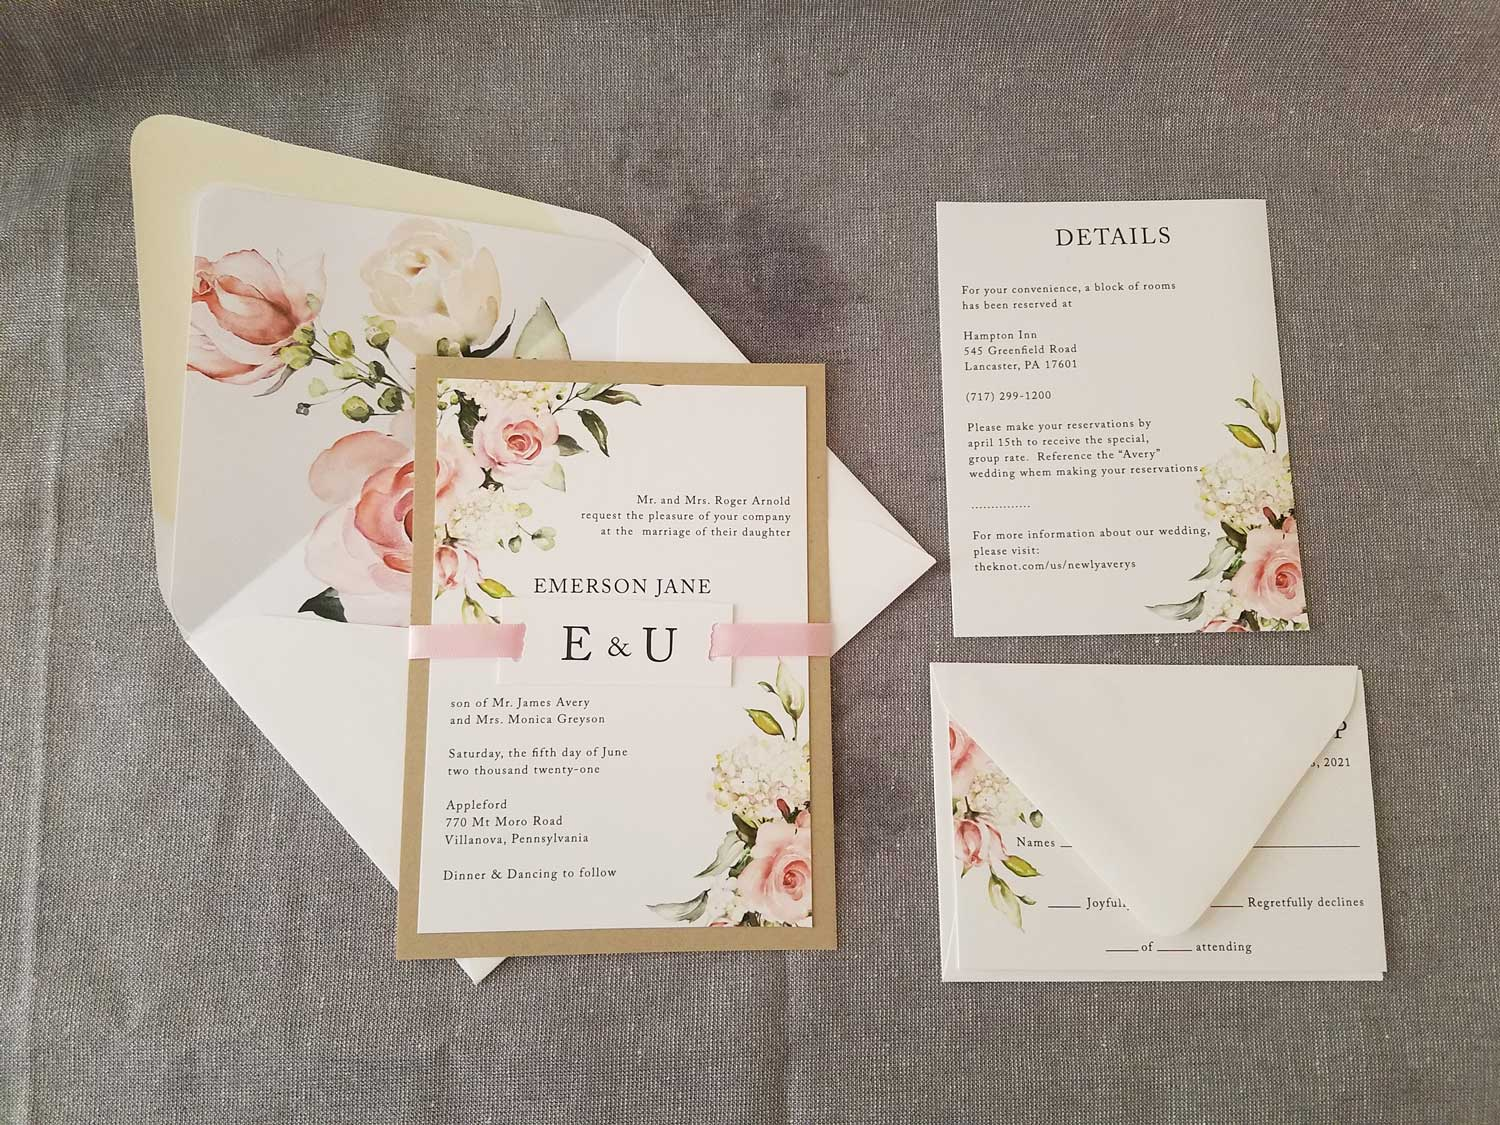 blushing-garden-wedding-invitation-2